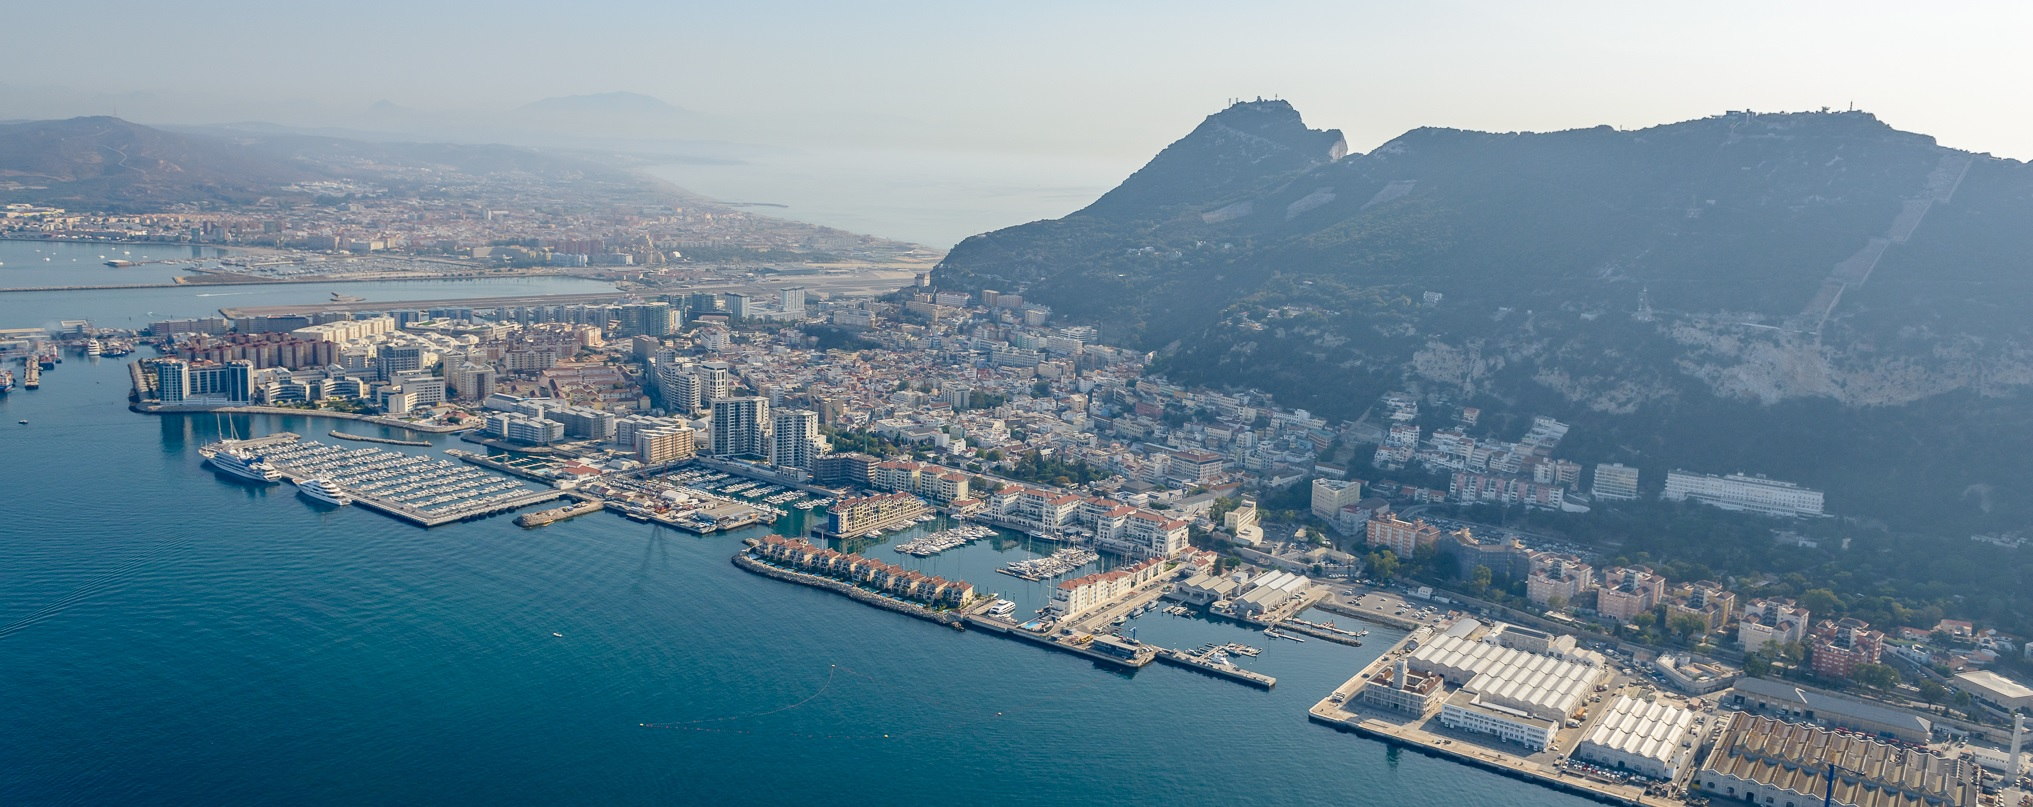 Gibraltar From Helicopter The Town - Gibheli